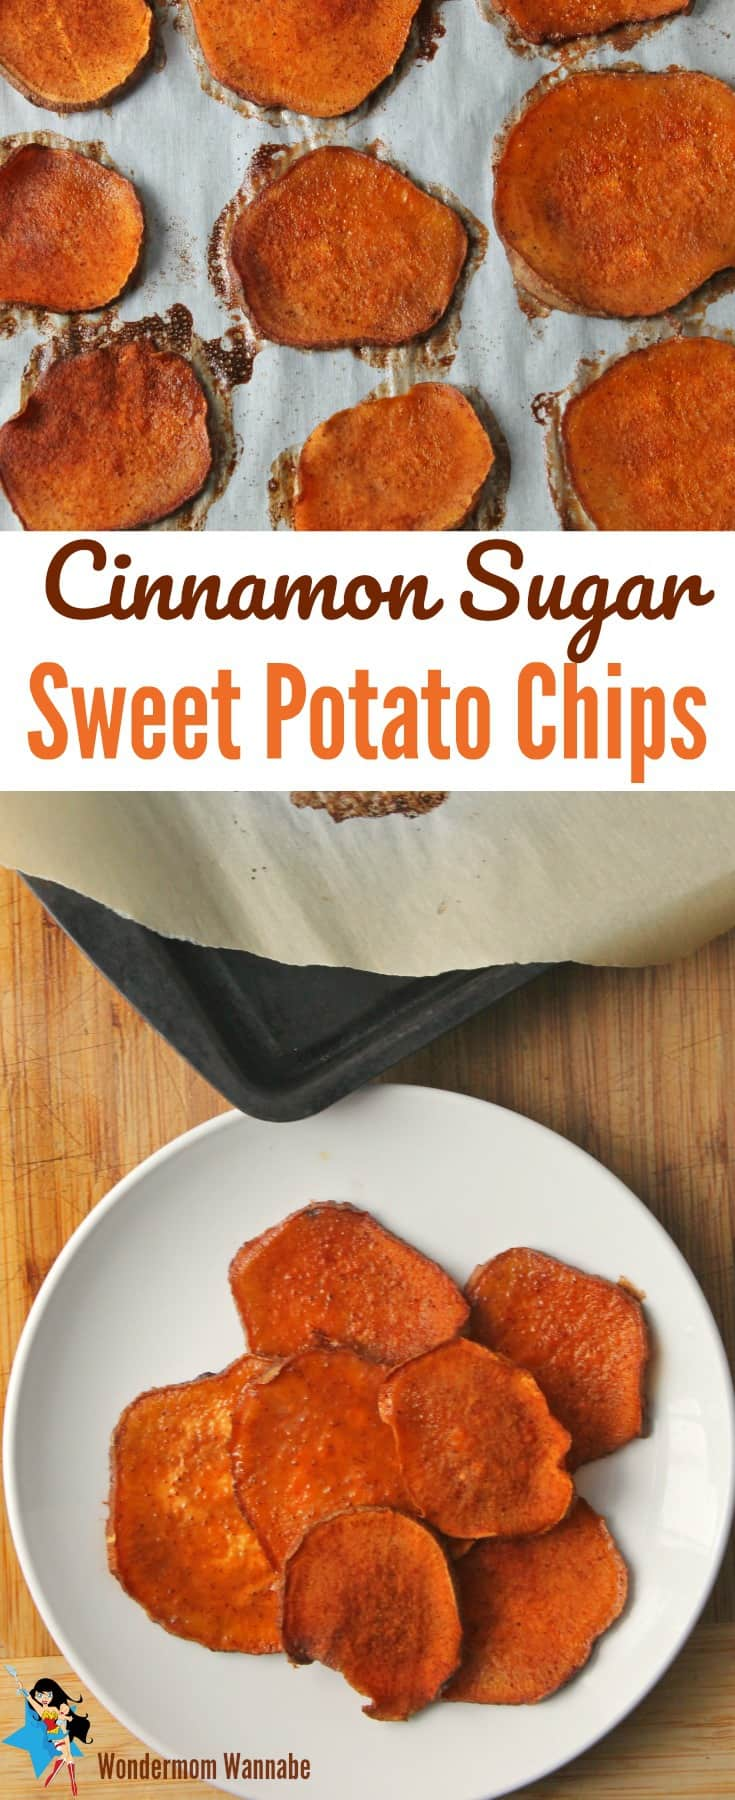 Looking for a guilt-free, delicious snack? These Cinnamon Sugar Sweet Potato Chips are perfect!